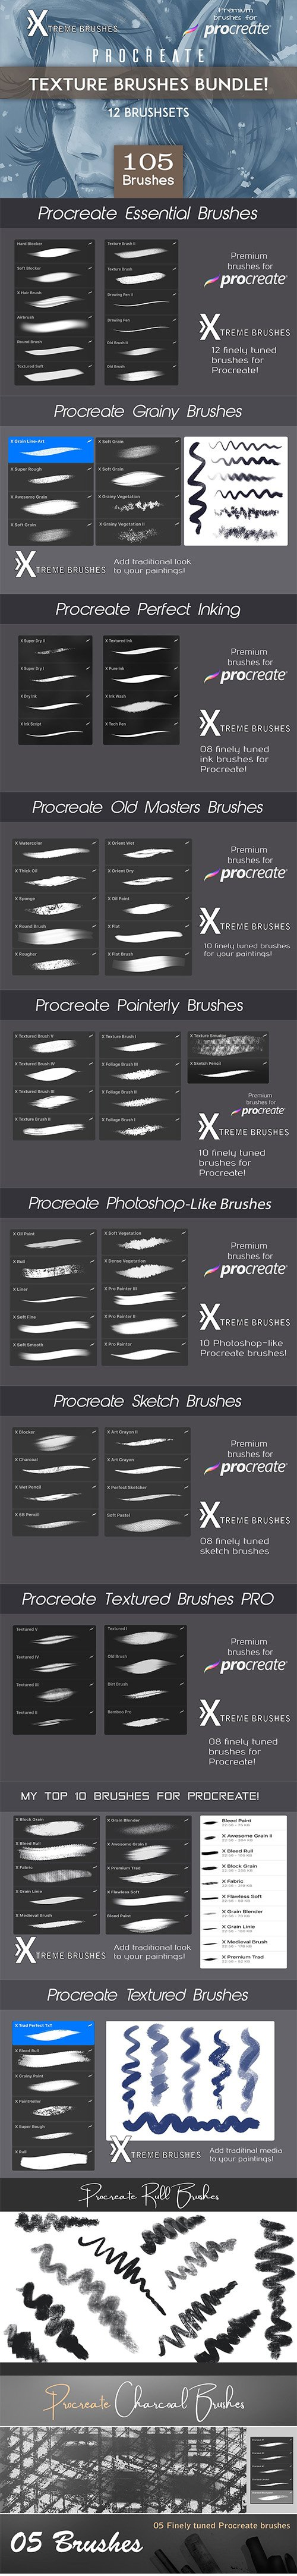 CreativeMarket - Procreate Texture Brushes BUNDLE 3480564